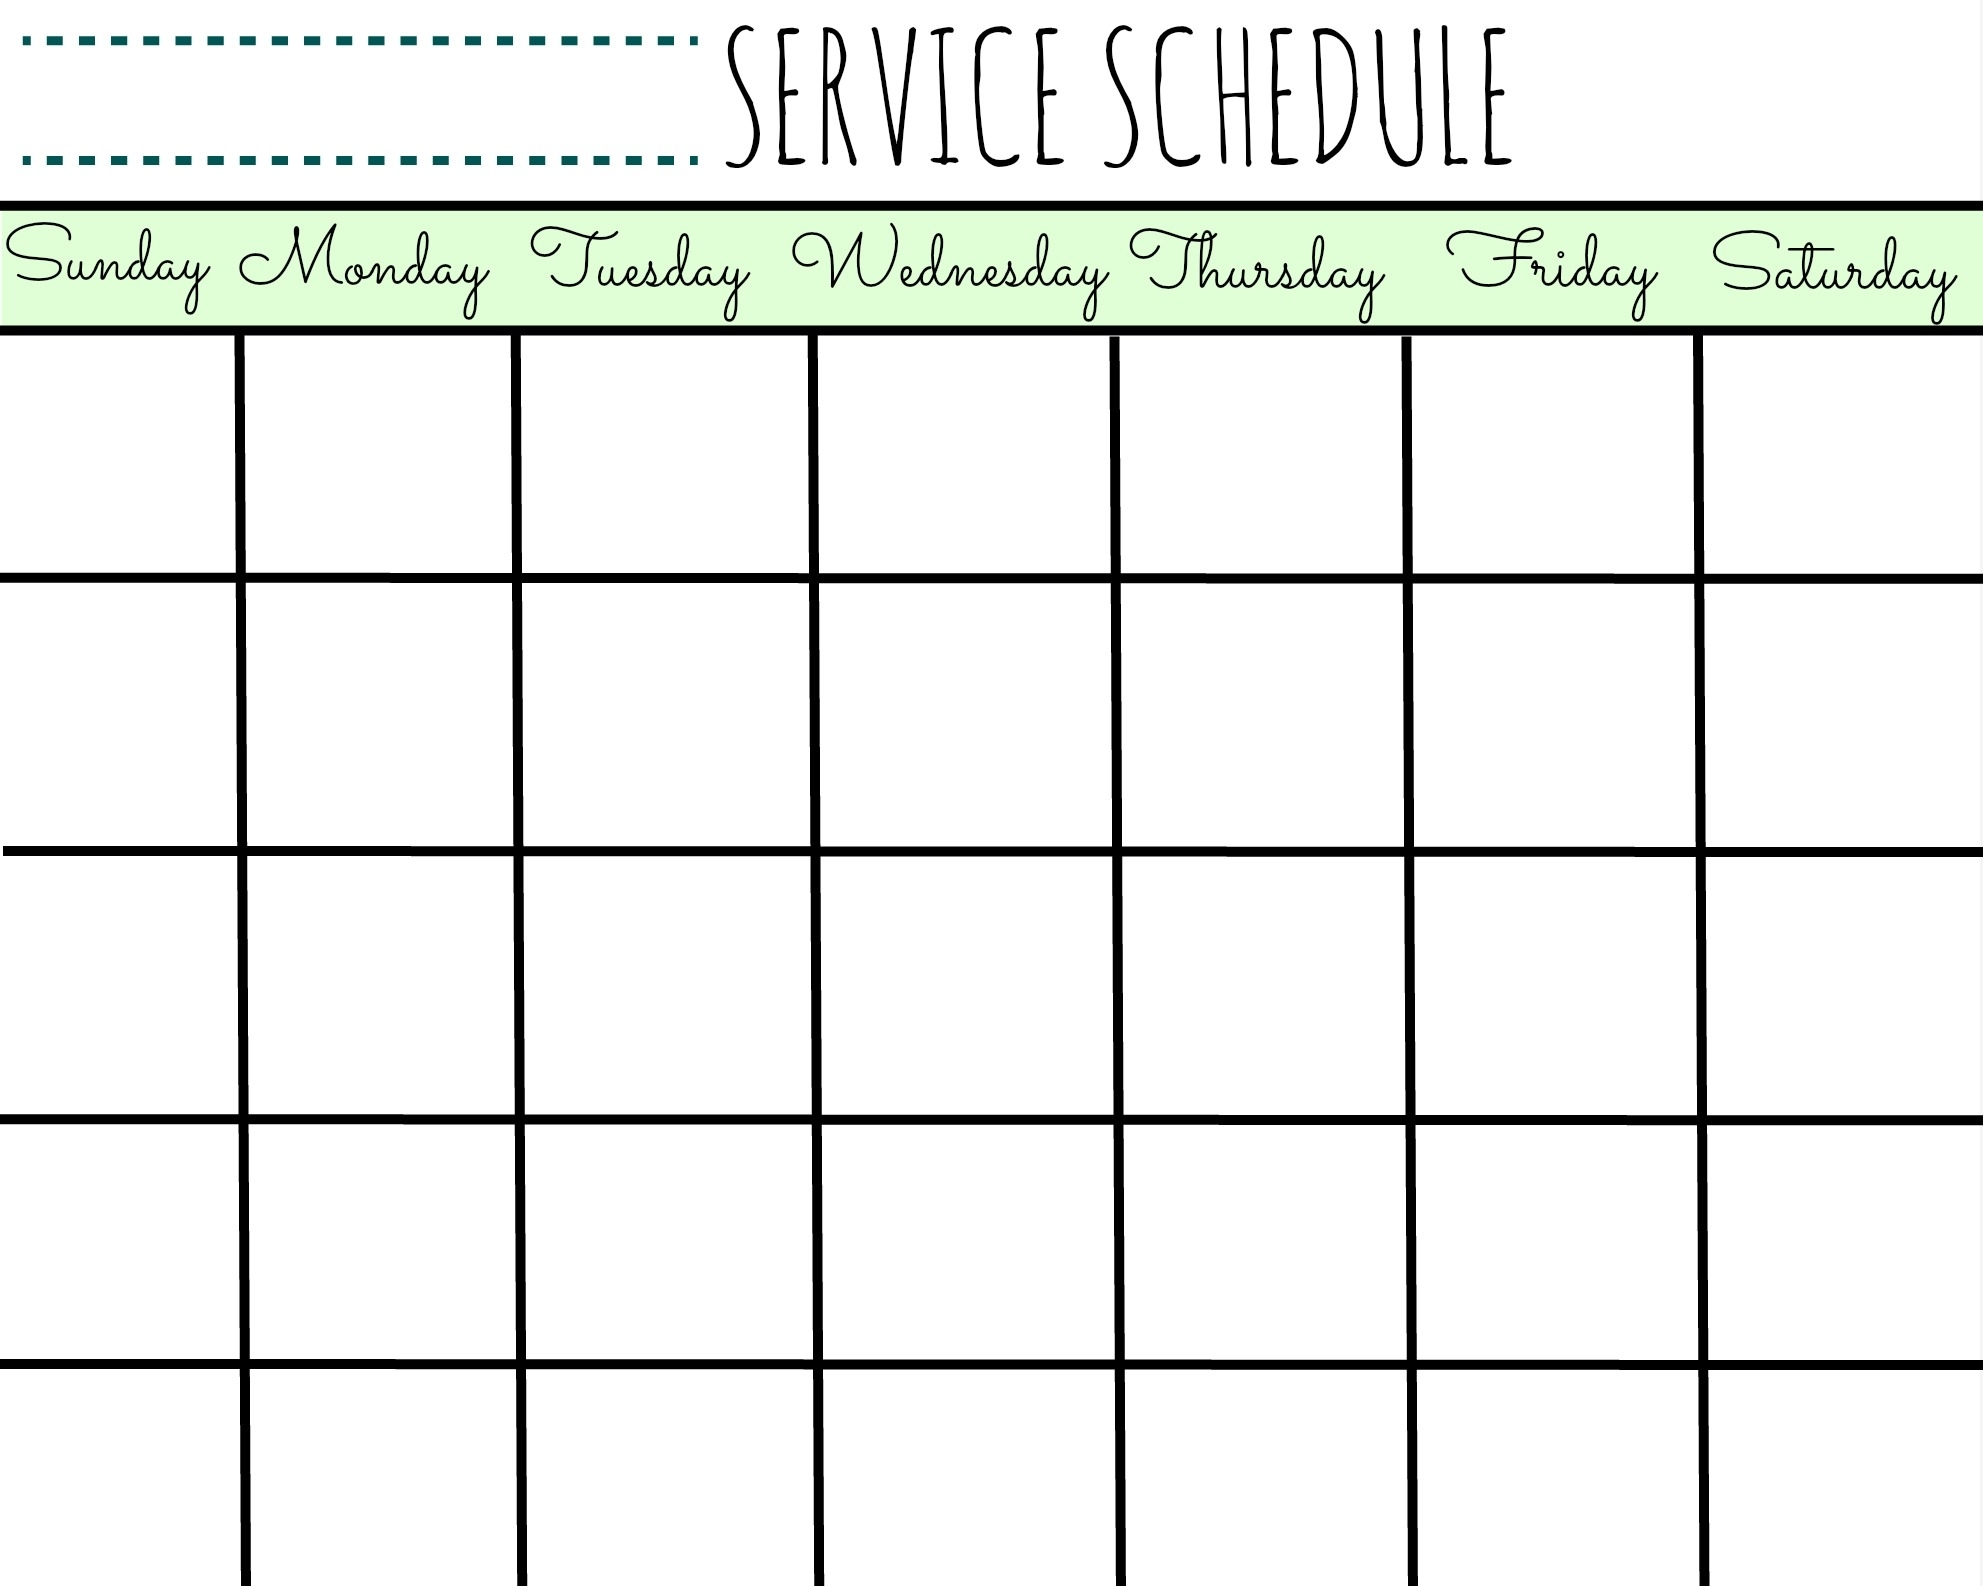 Service Schedule Calendar Printable - First Home Love Life